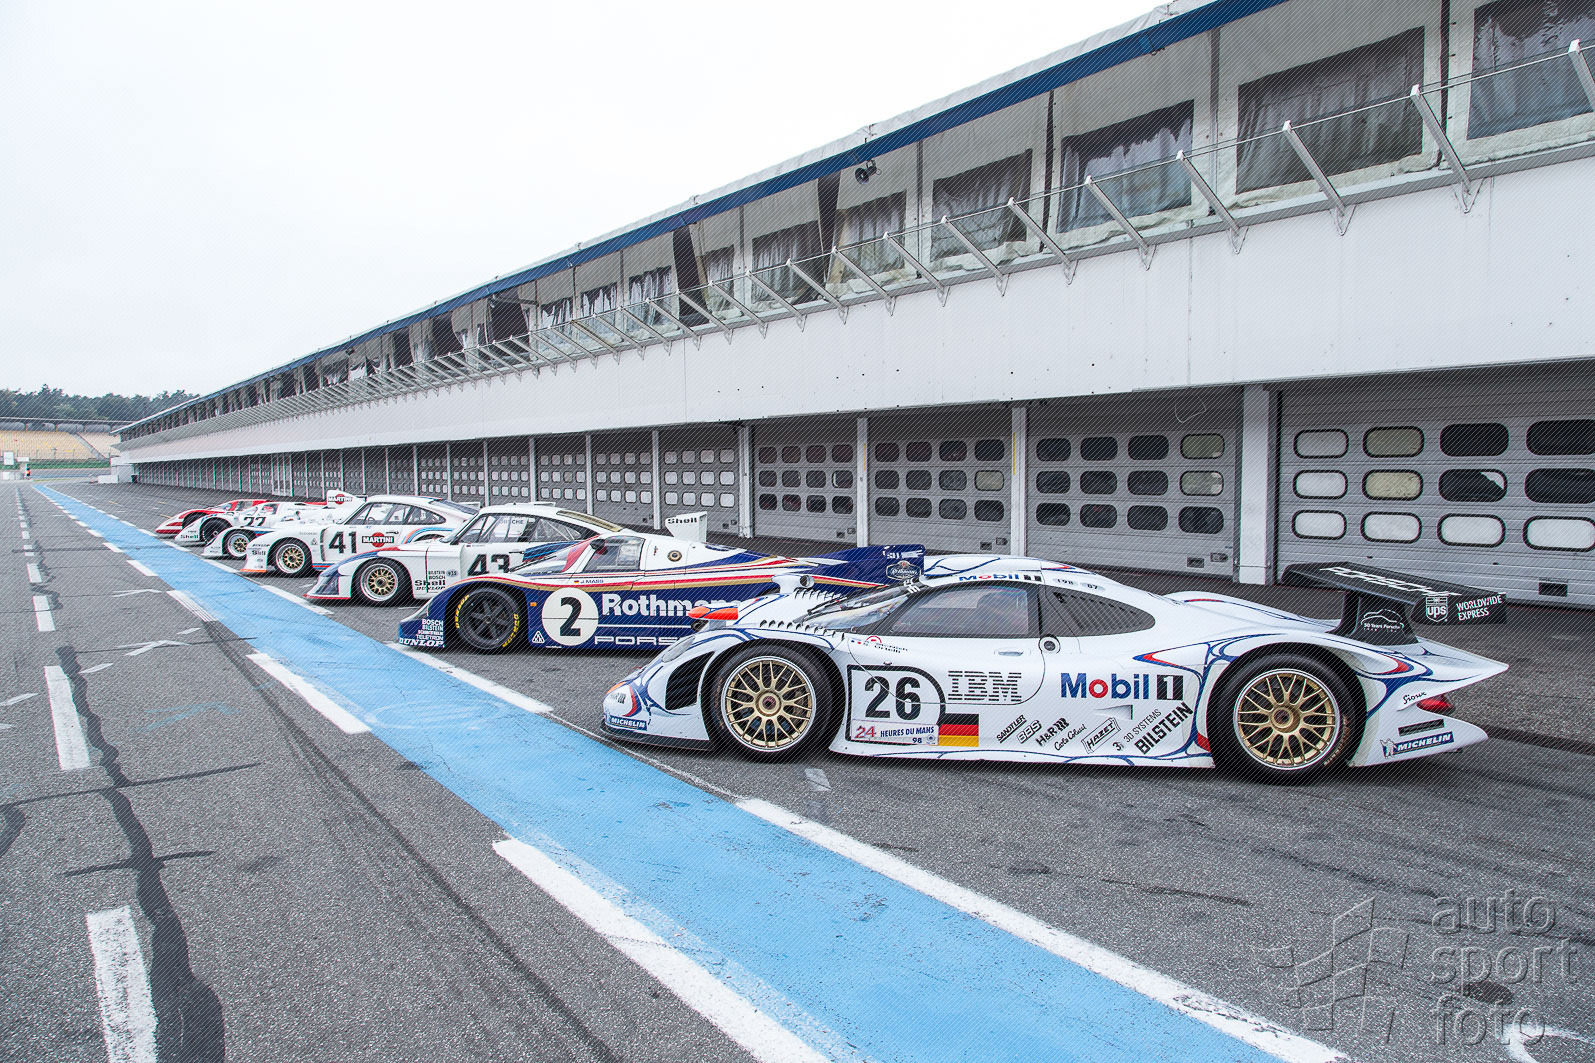 meet the heroes of le mans